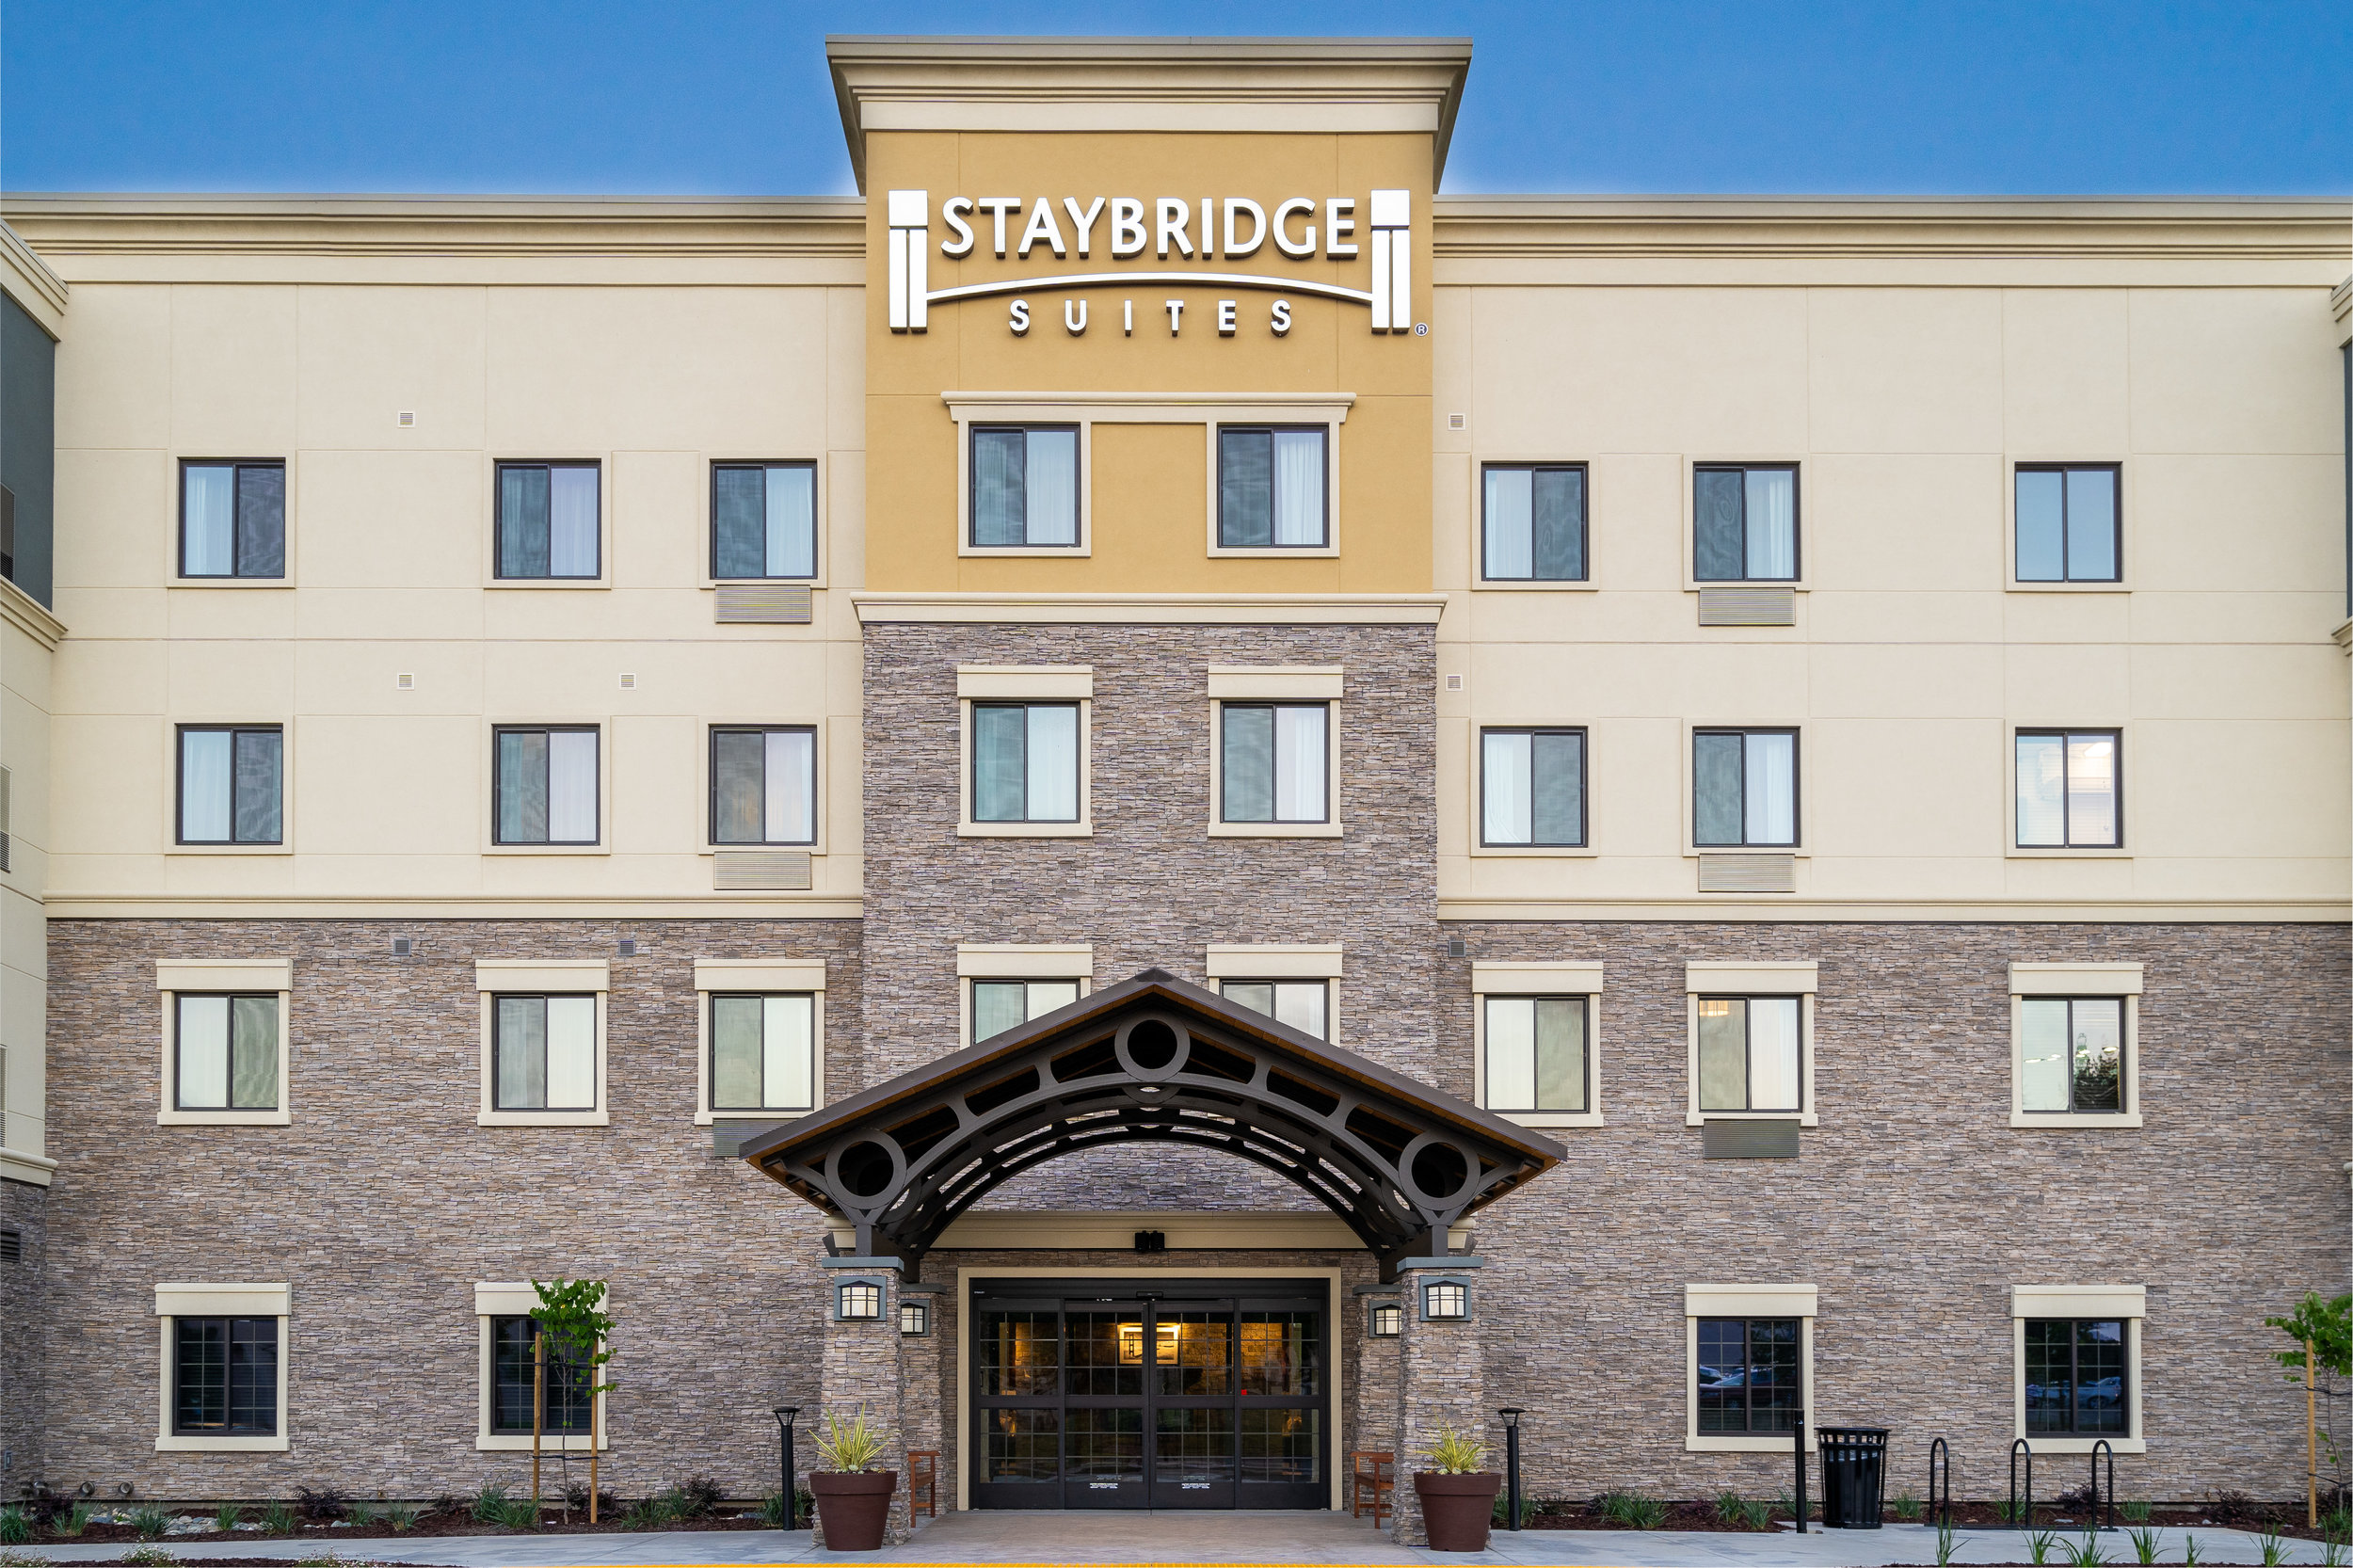 newark-staybridge-suites-exterior-day.jpg